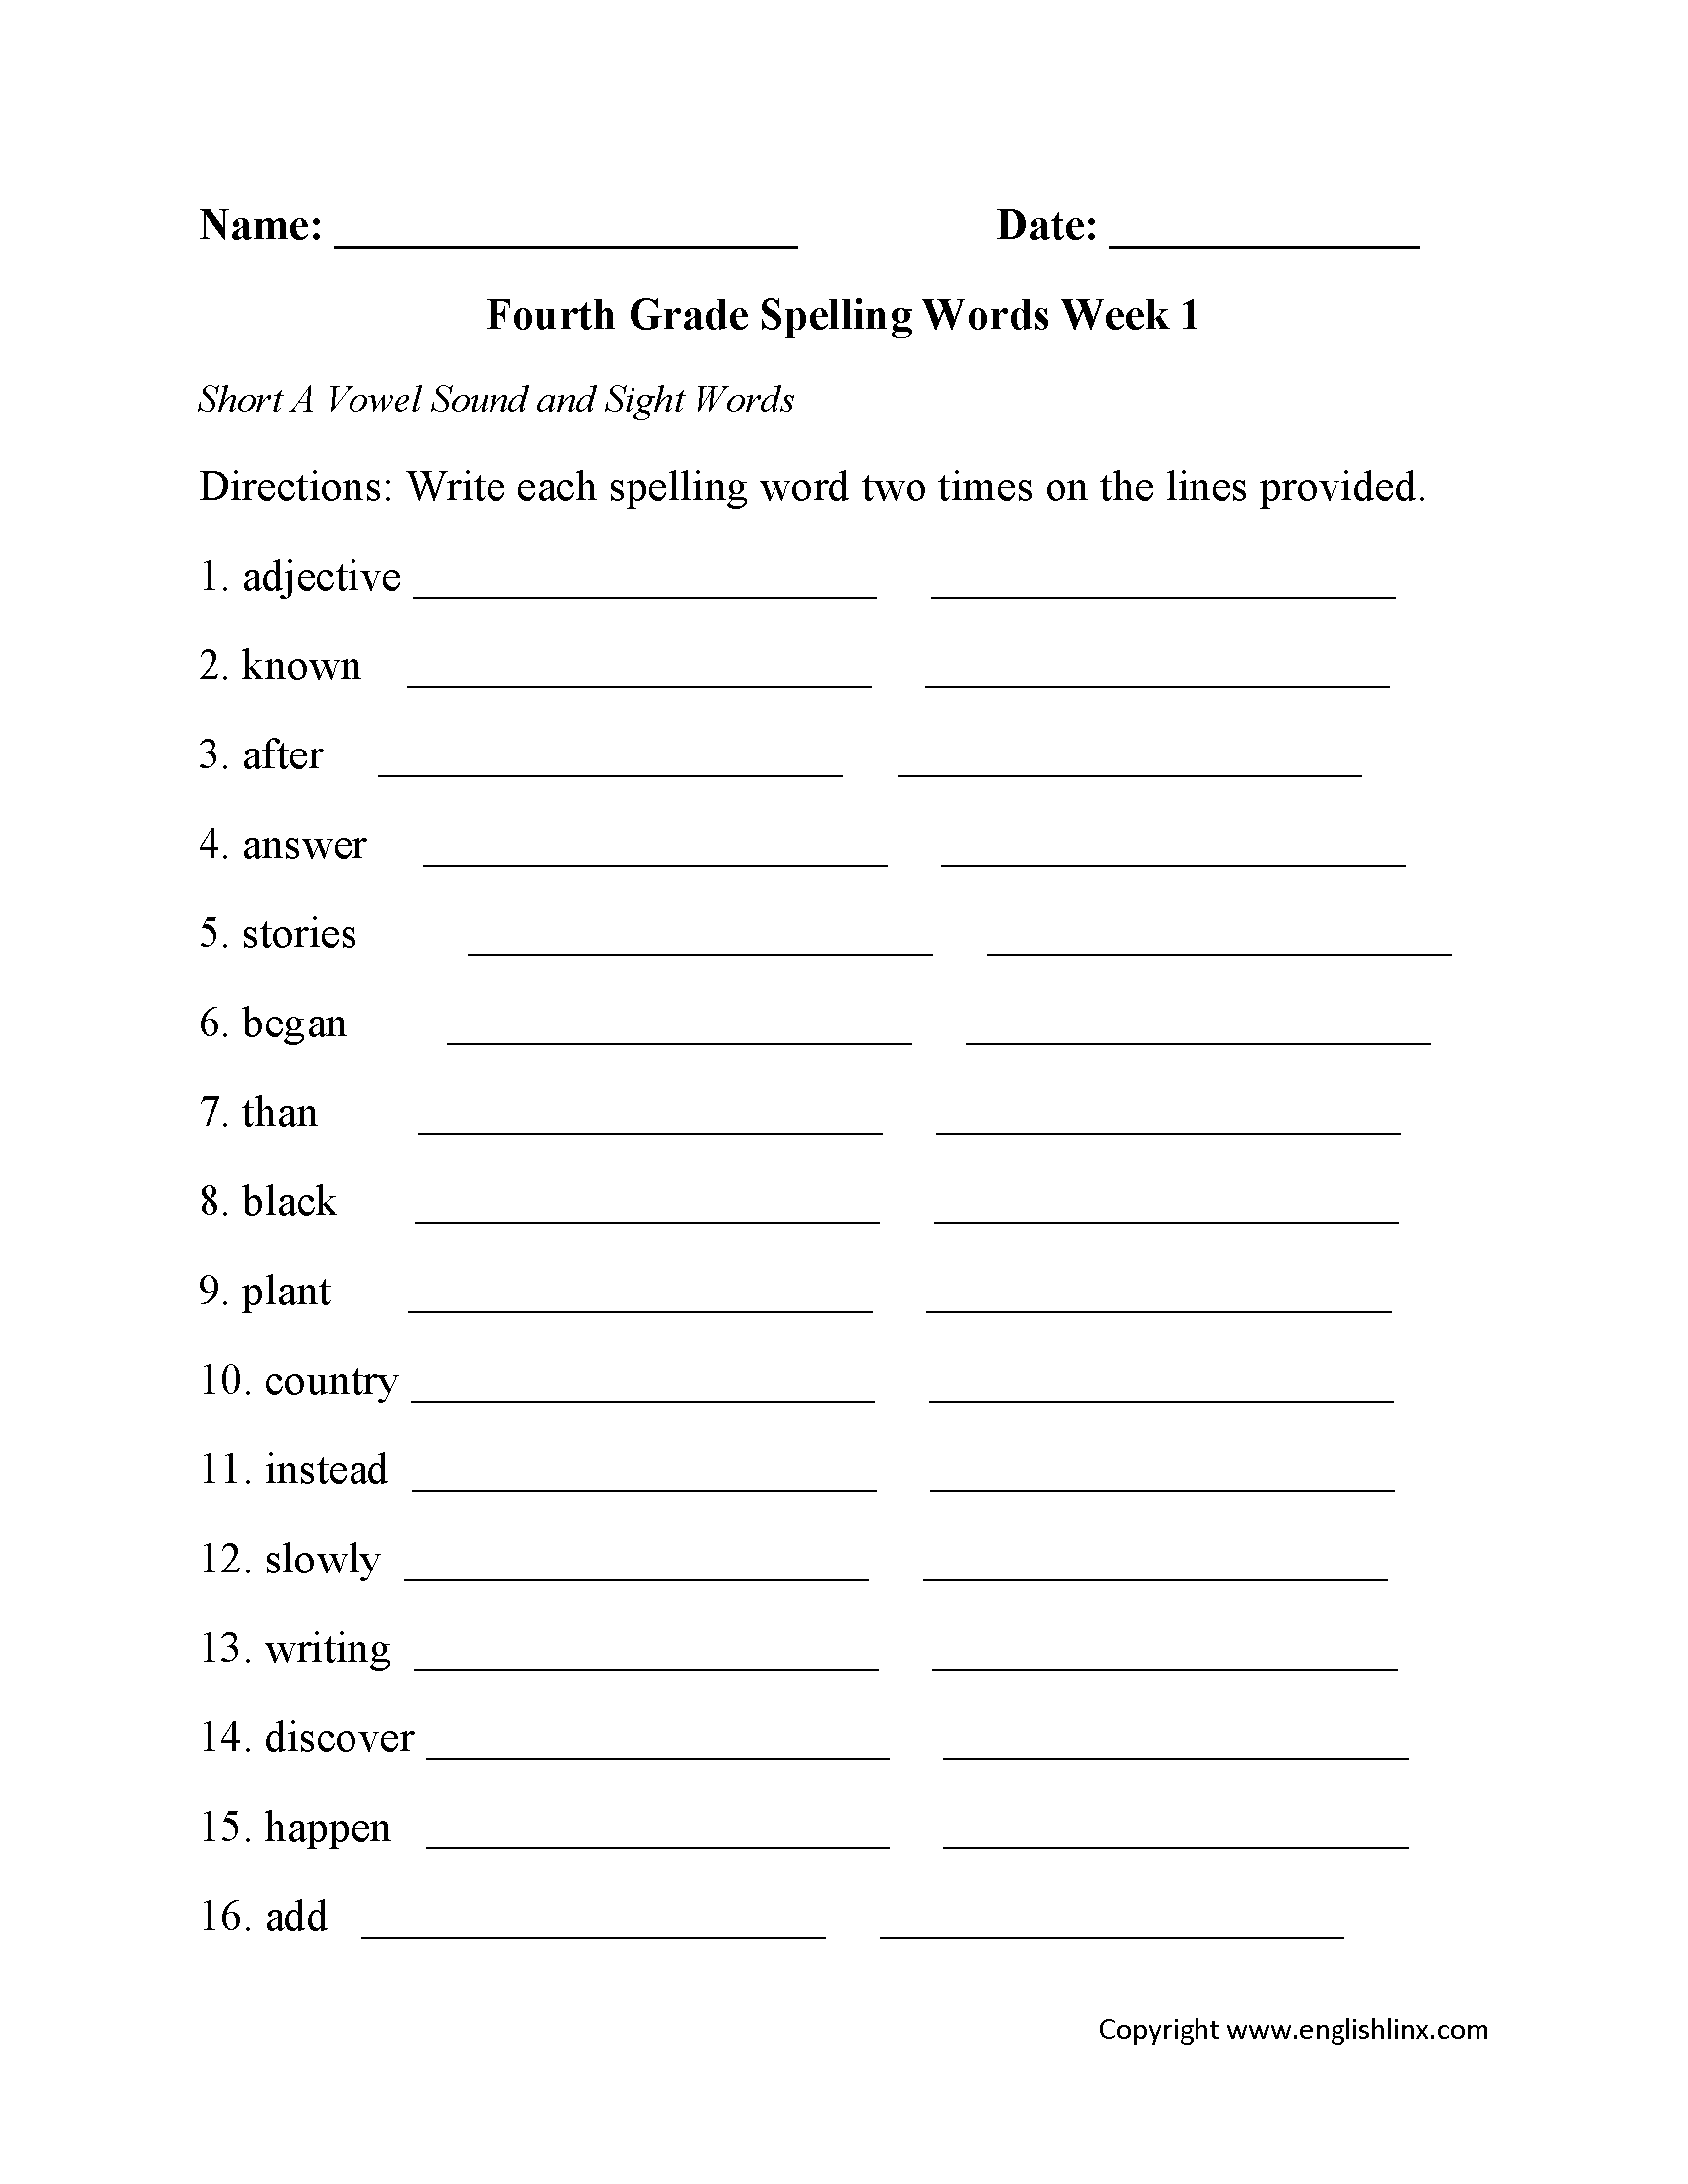 Worksheets Year 4 Spellings Worksheets spelling worksheets fourth grade worksheets